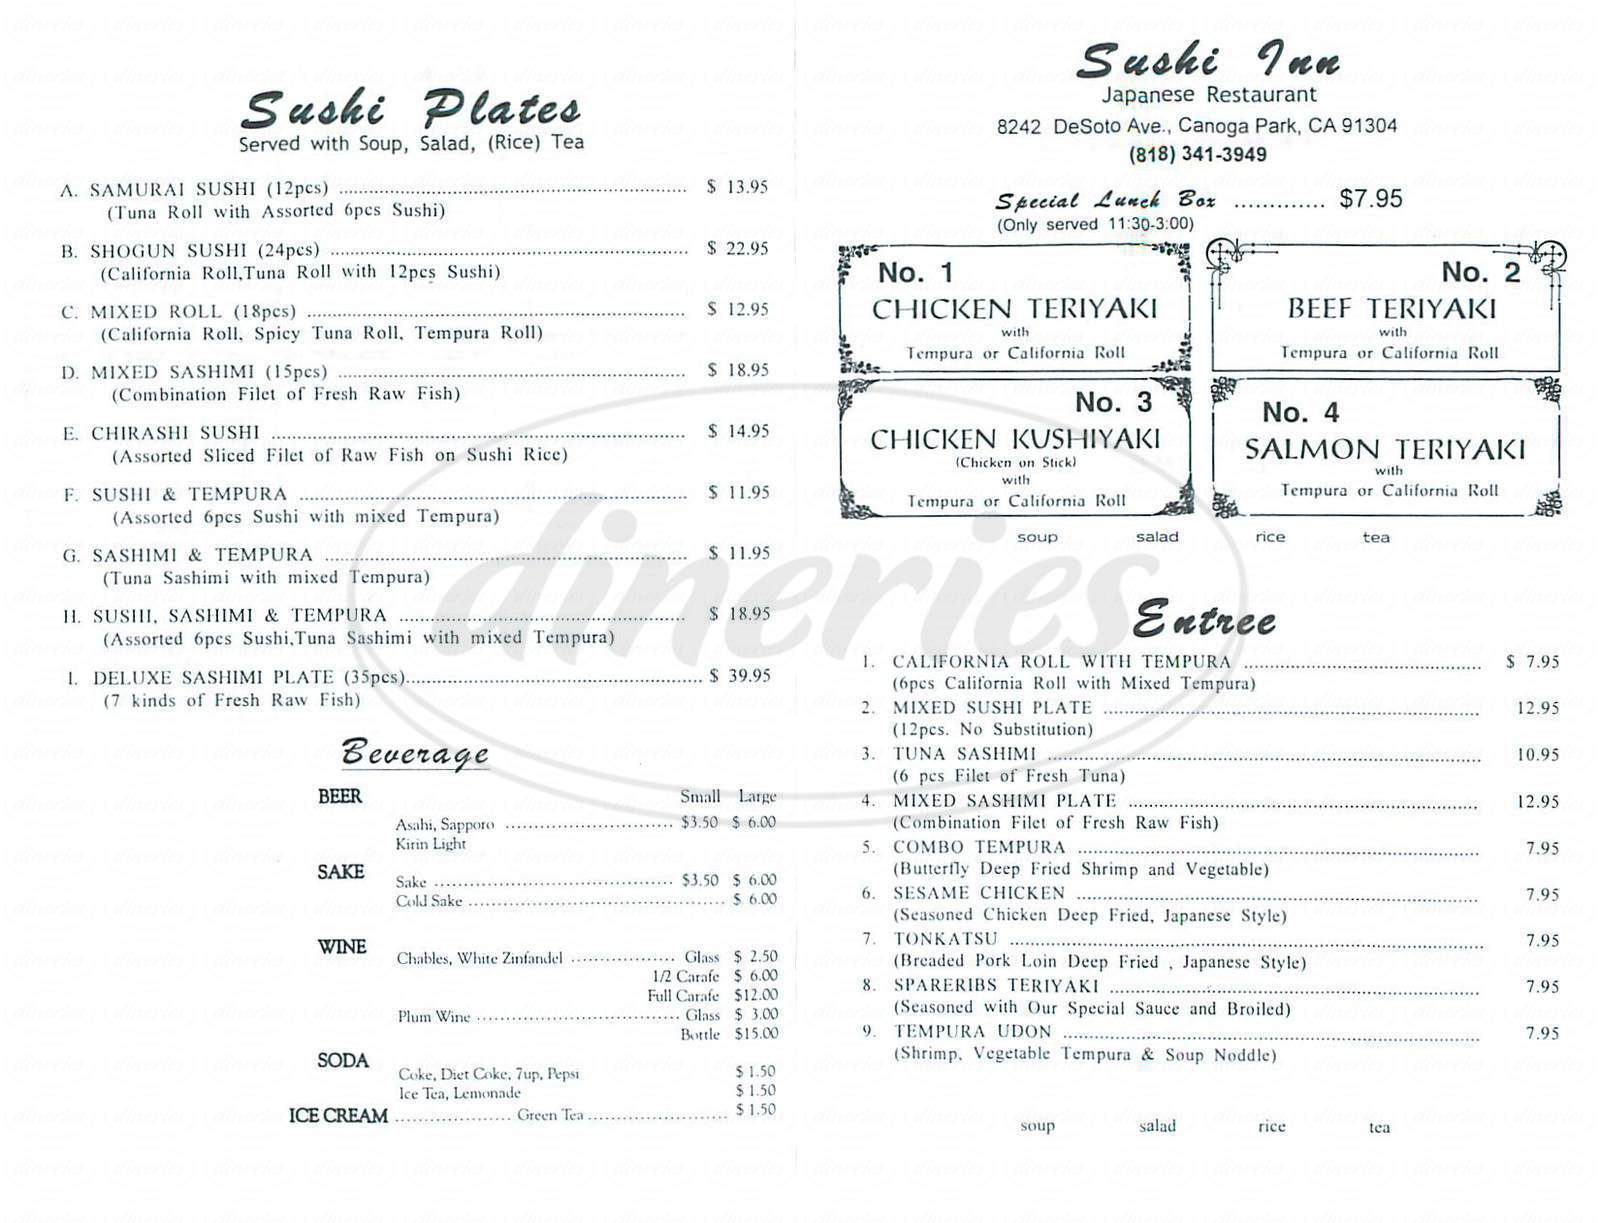 menu for Sushi Inn